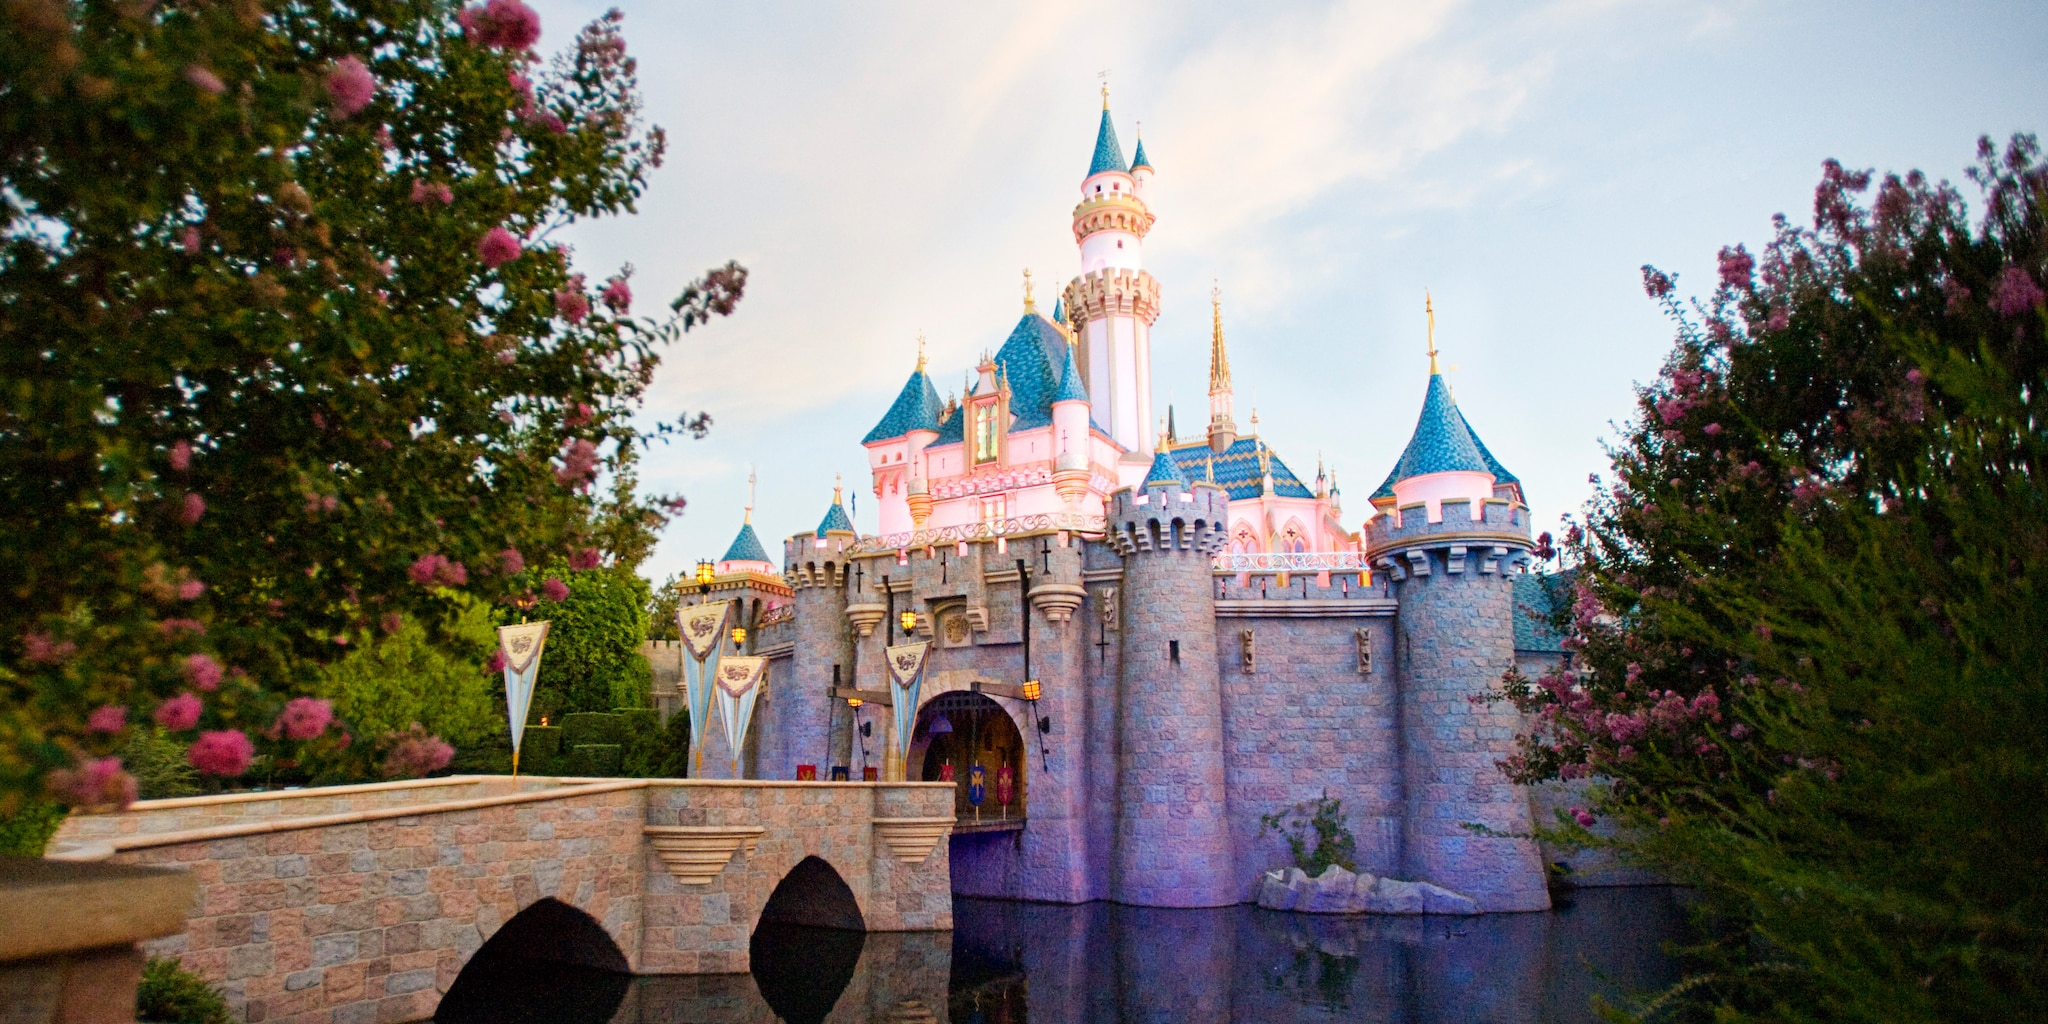 Disneyland® Park is one stop on the California vacation